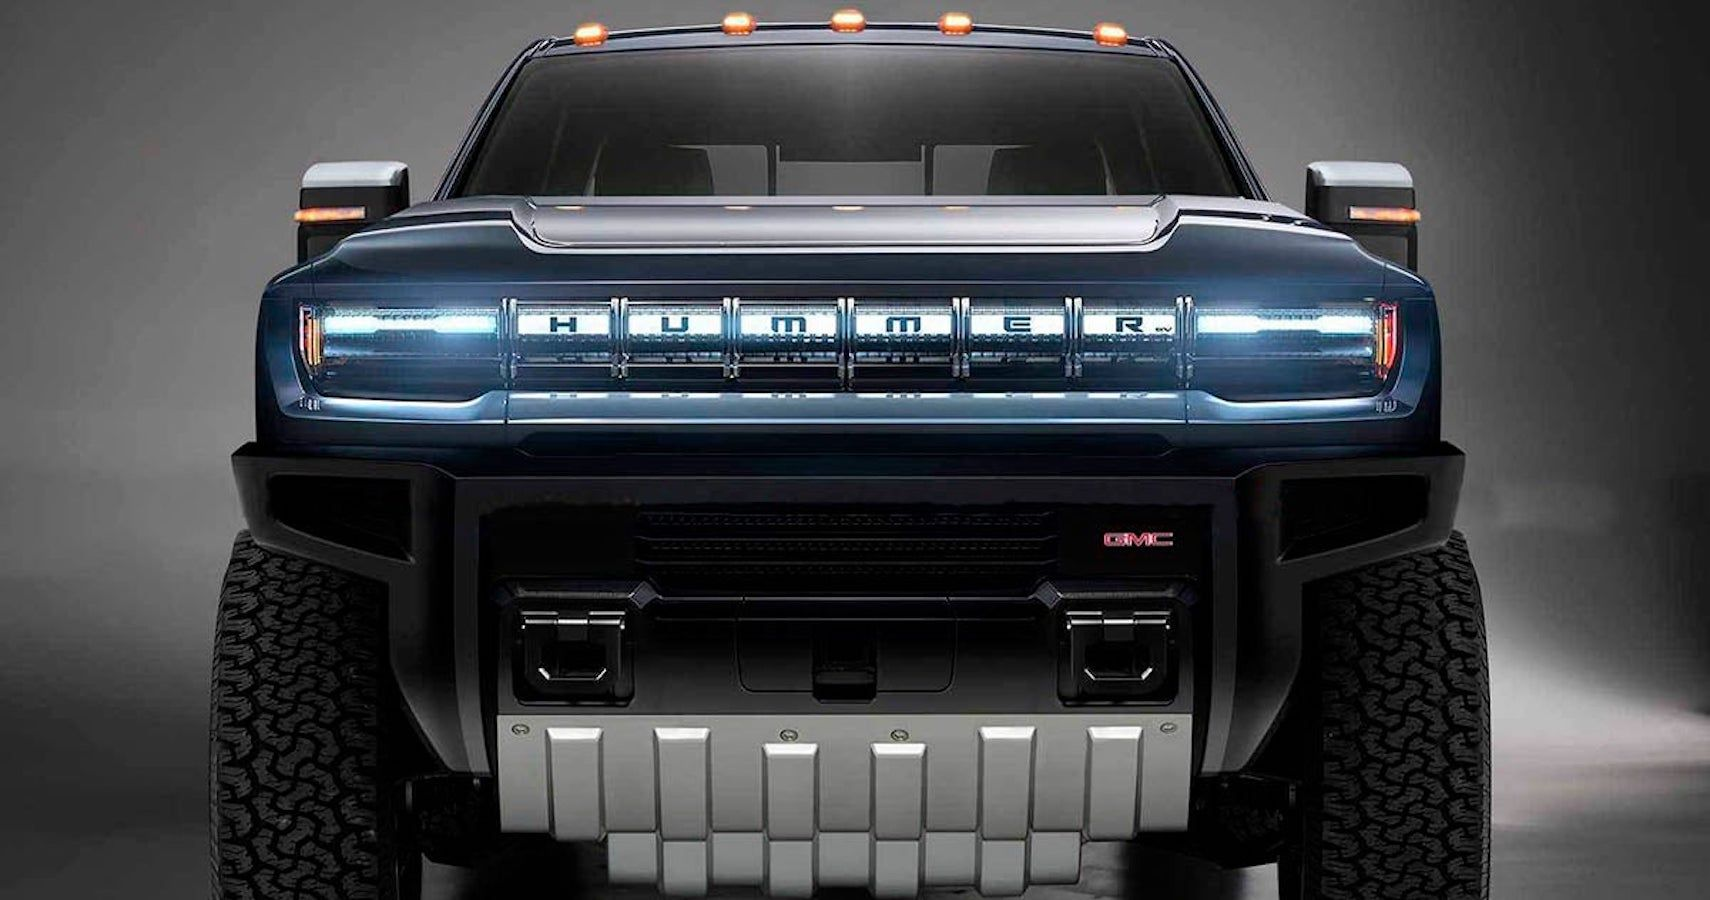 GMC Hummer EV: Everything We Know 24 Hours Before Its World Premiere